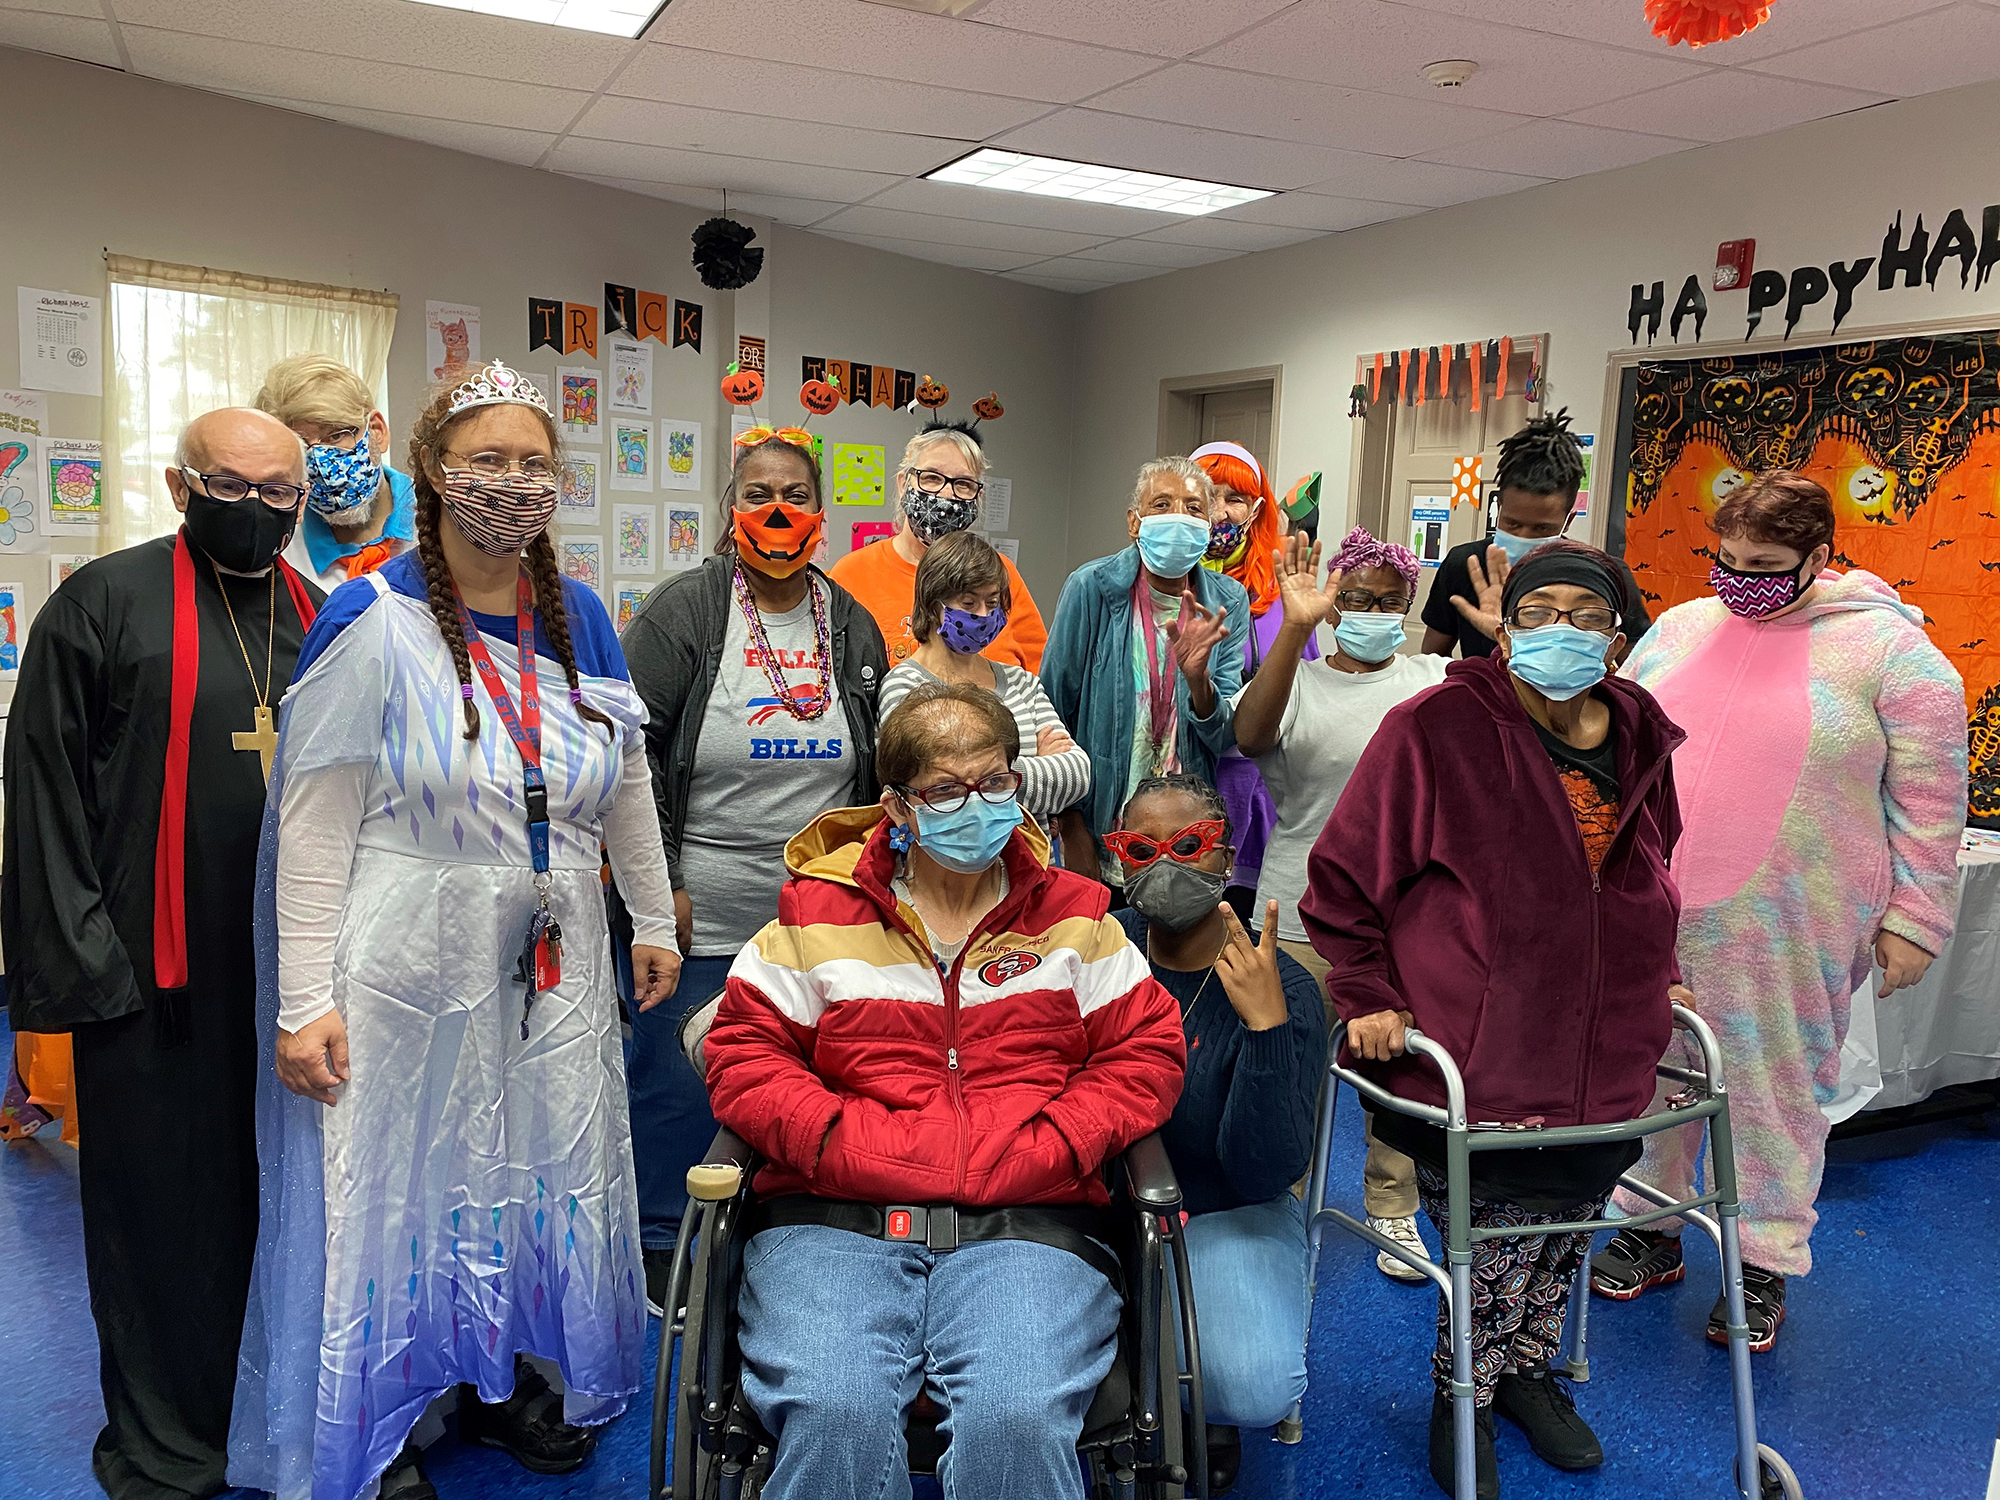 Our Community Based Day Habilitation group poses for picture in their costumes